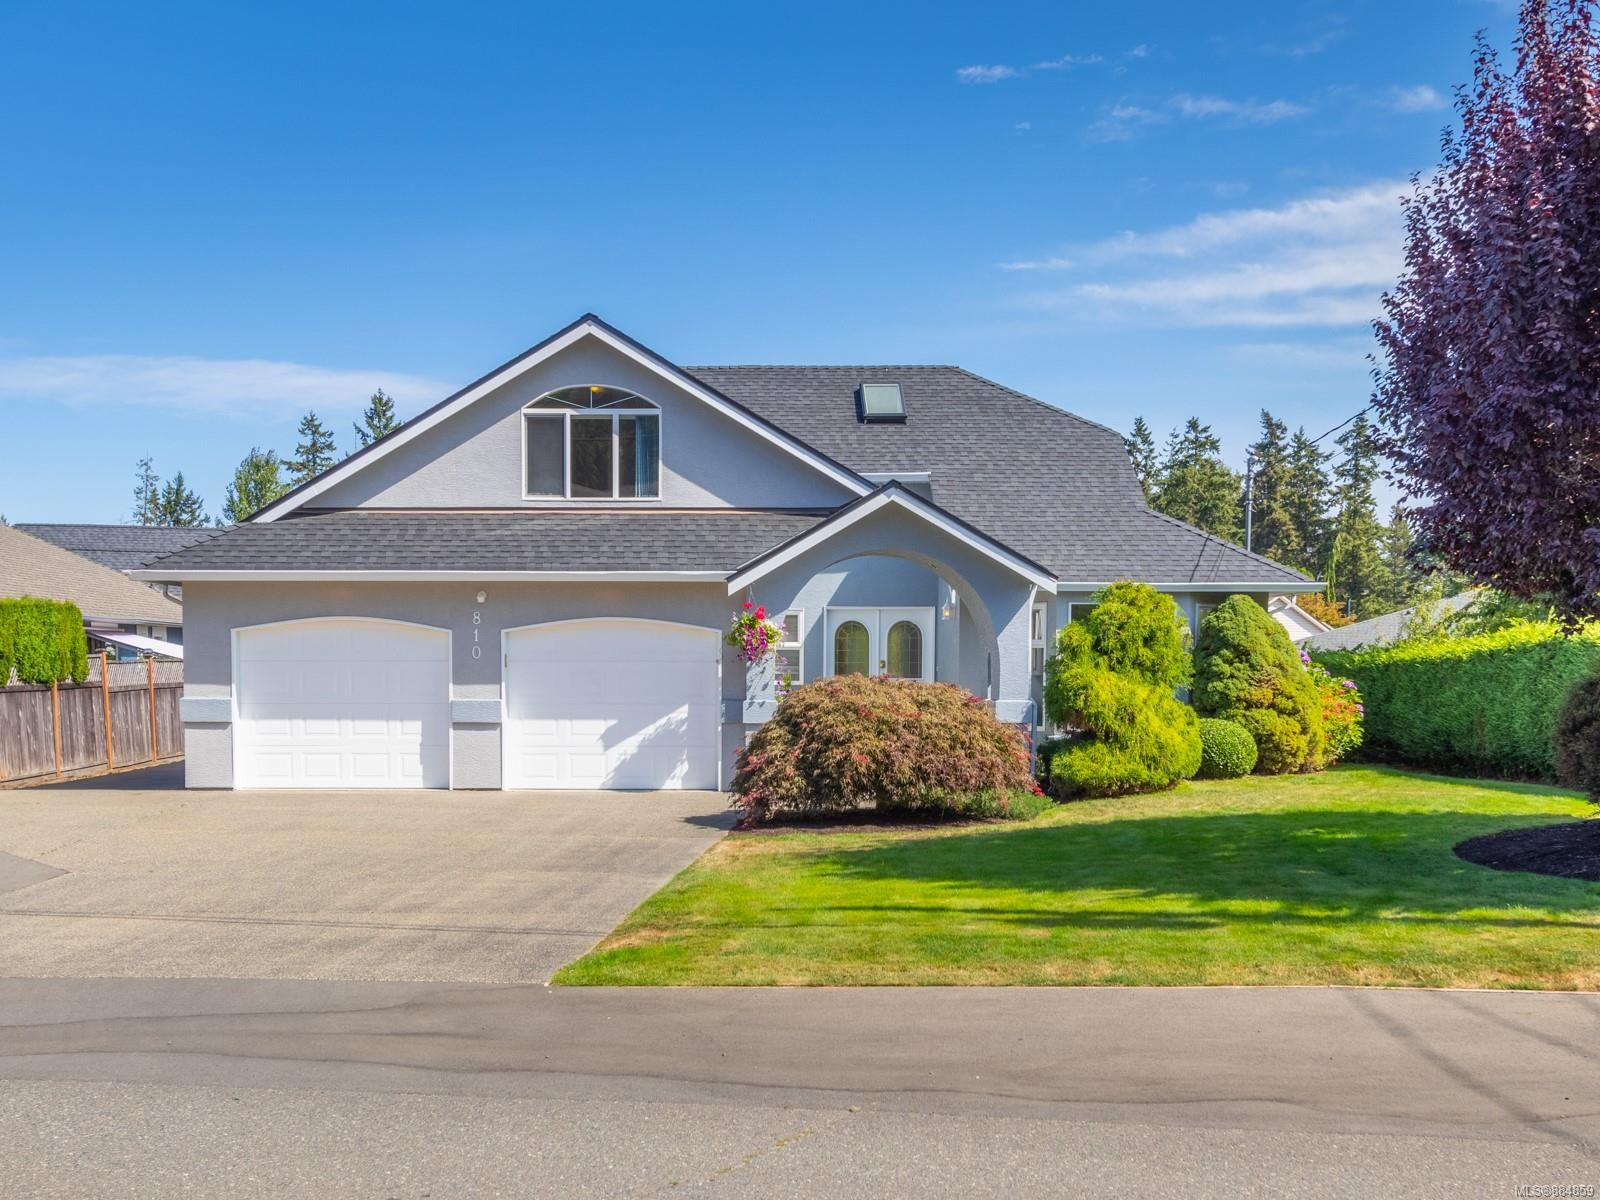 Main Photo: 810 Arrowsmith Way in : PQ French Creek House for sale (Parksville/Qualicum)  : MLS®# 884859